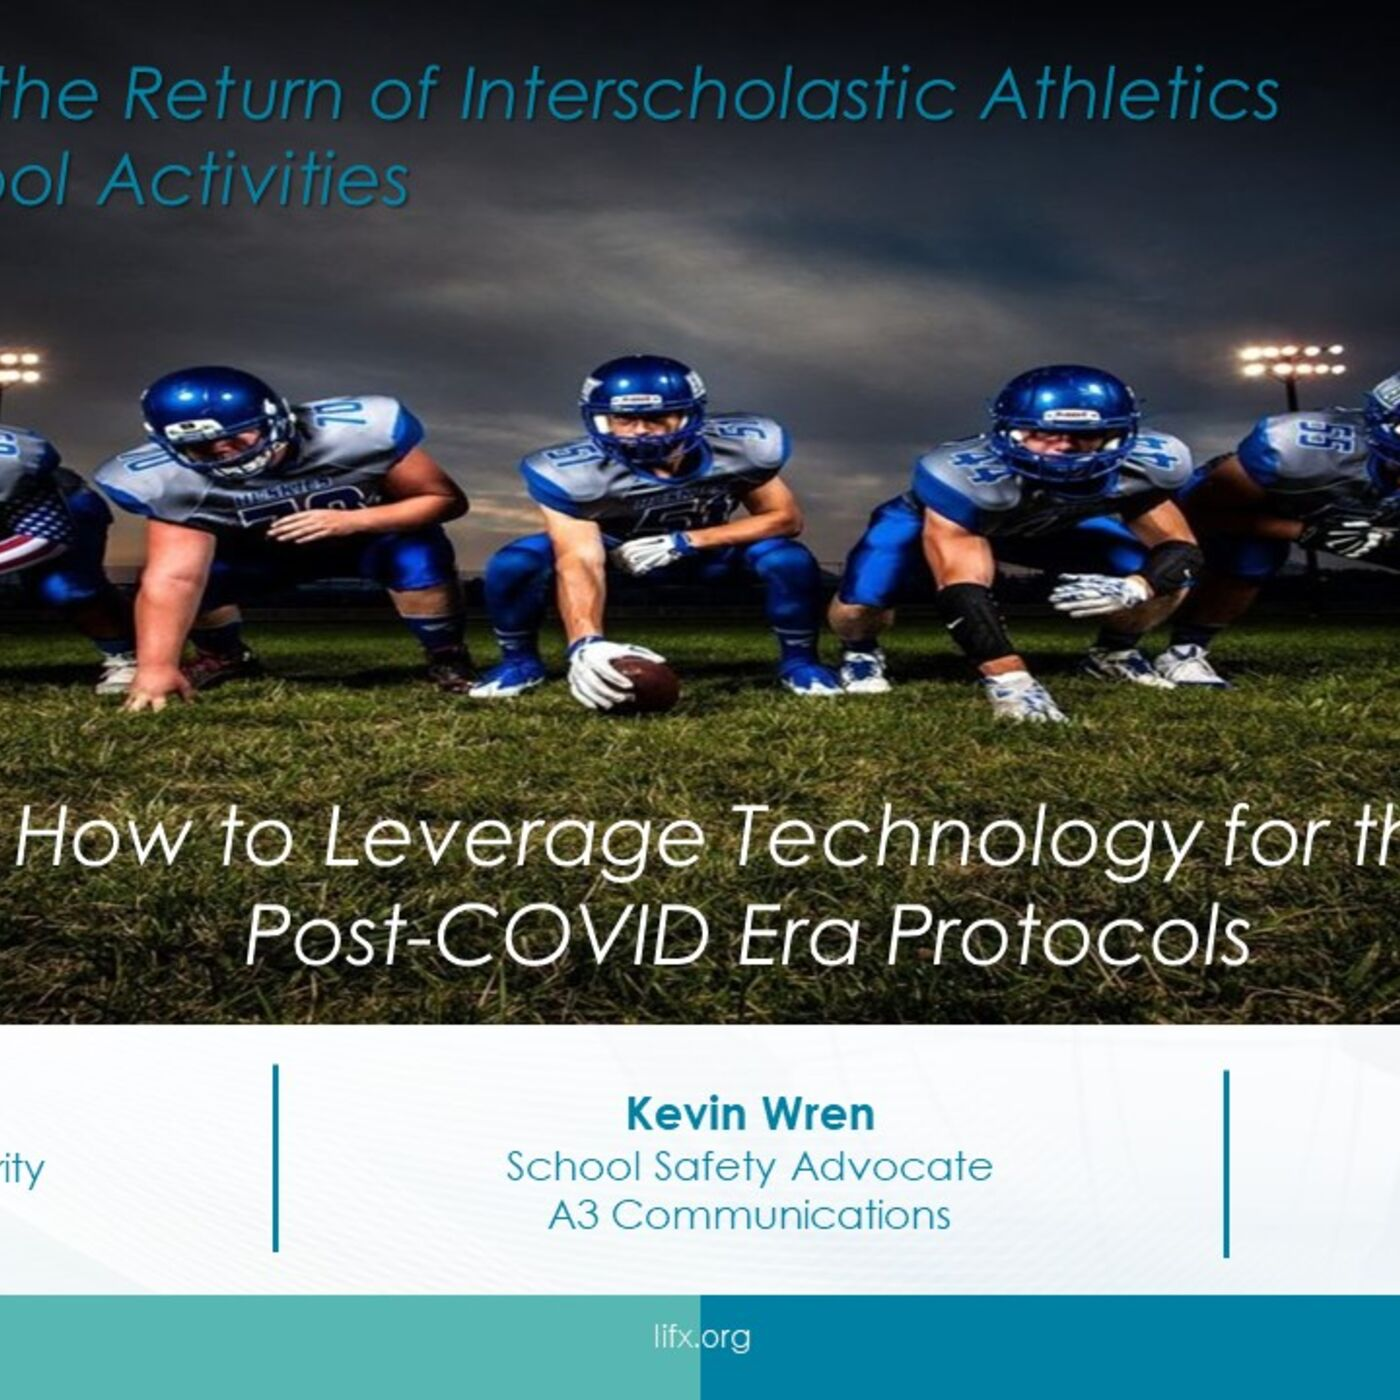 Session 3 - How to Leverage Technology for the Post COVID Era Protocols